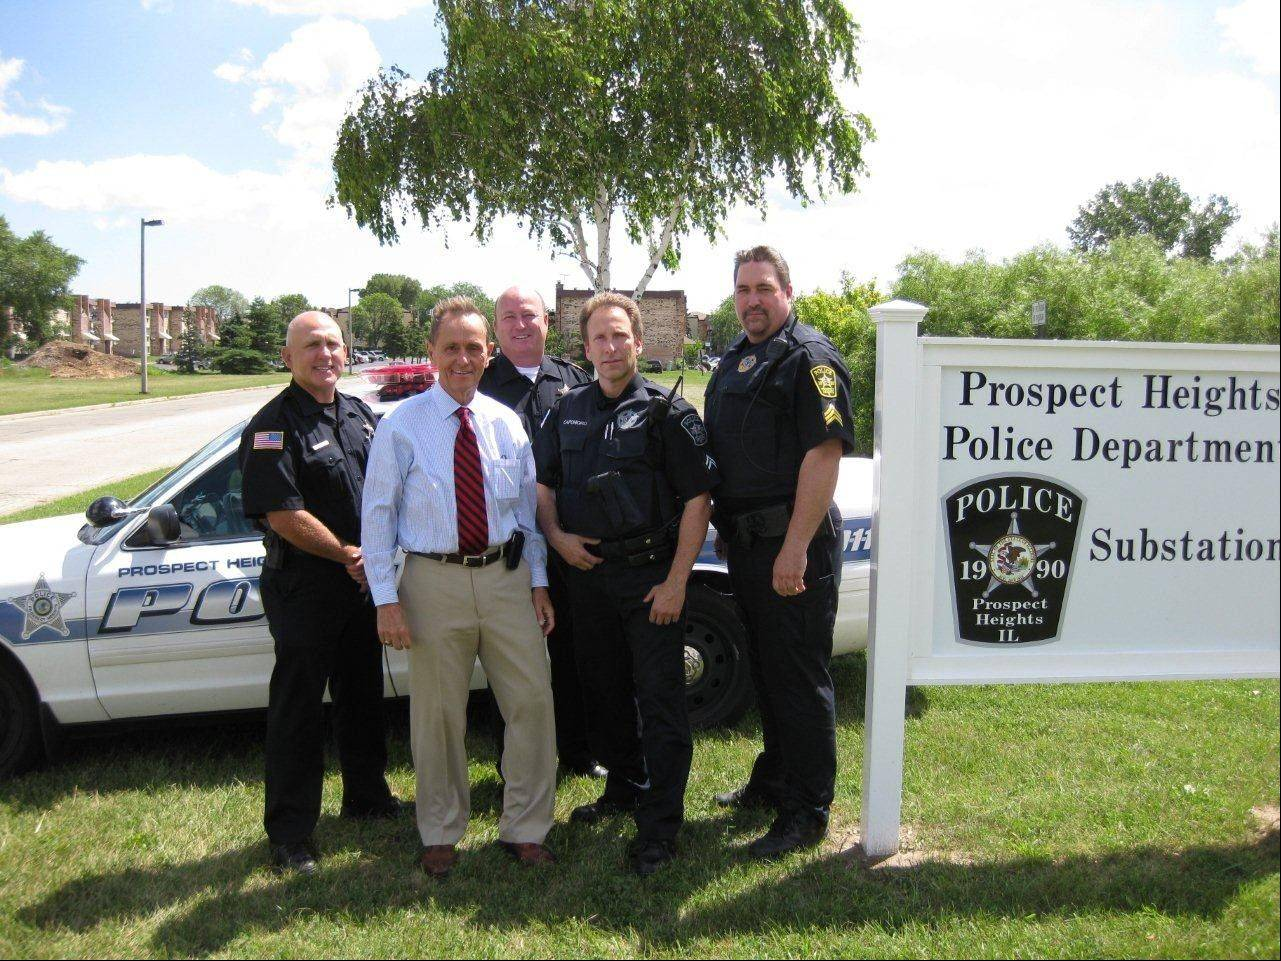 Prospect Heights officials announce the opening of a police substation in the eastern part of the city. From left: Deputy Chief Al Steffen, Mayor Nick Helmer, Chief Jamie Dunne, Cpl. Bill Caponigro and Sgt. Joe Pawlicki.